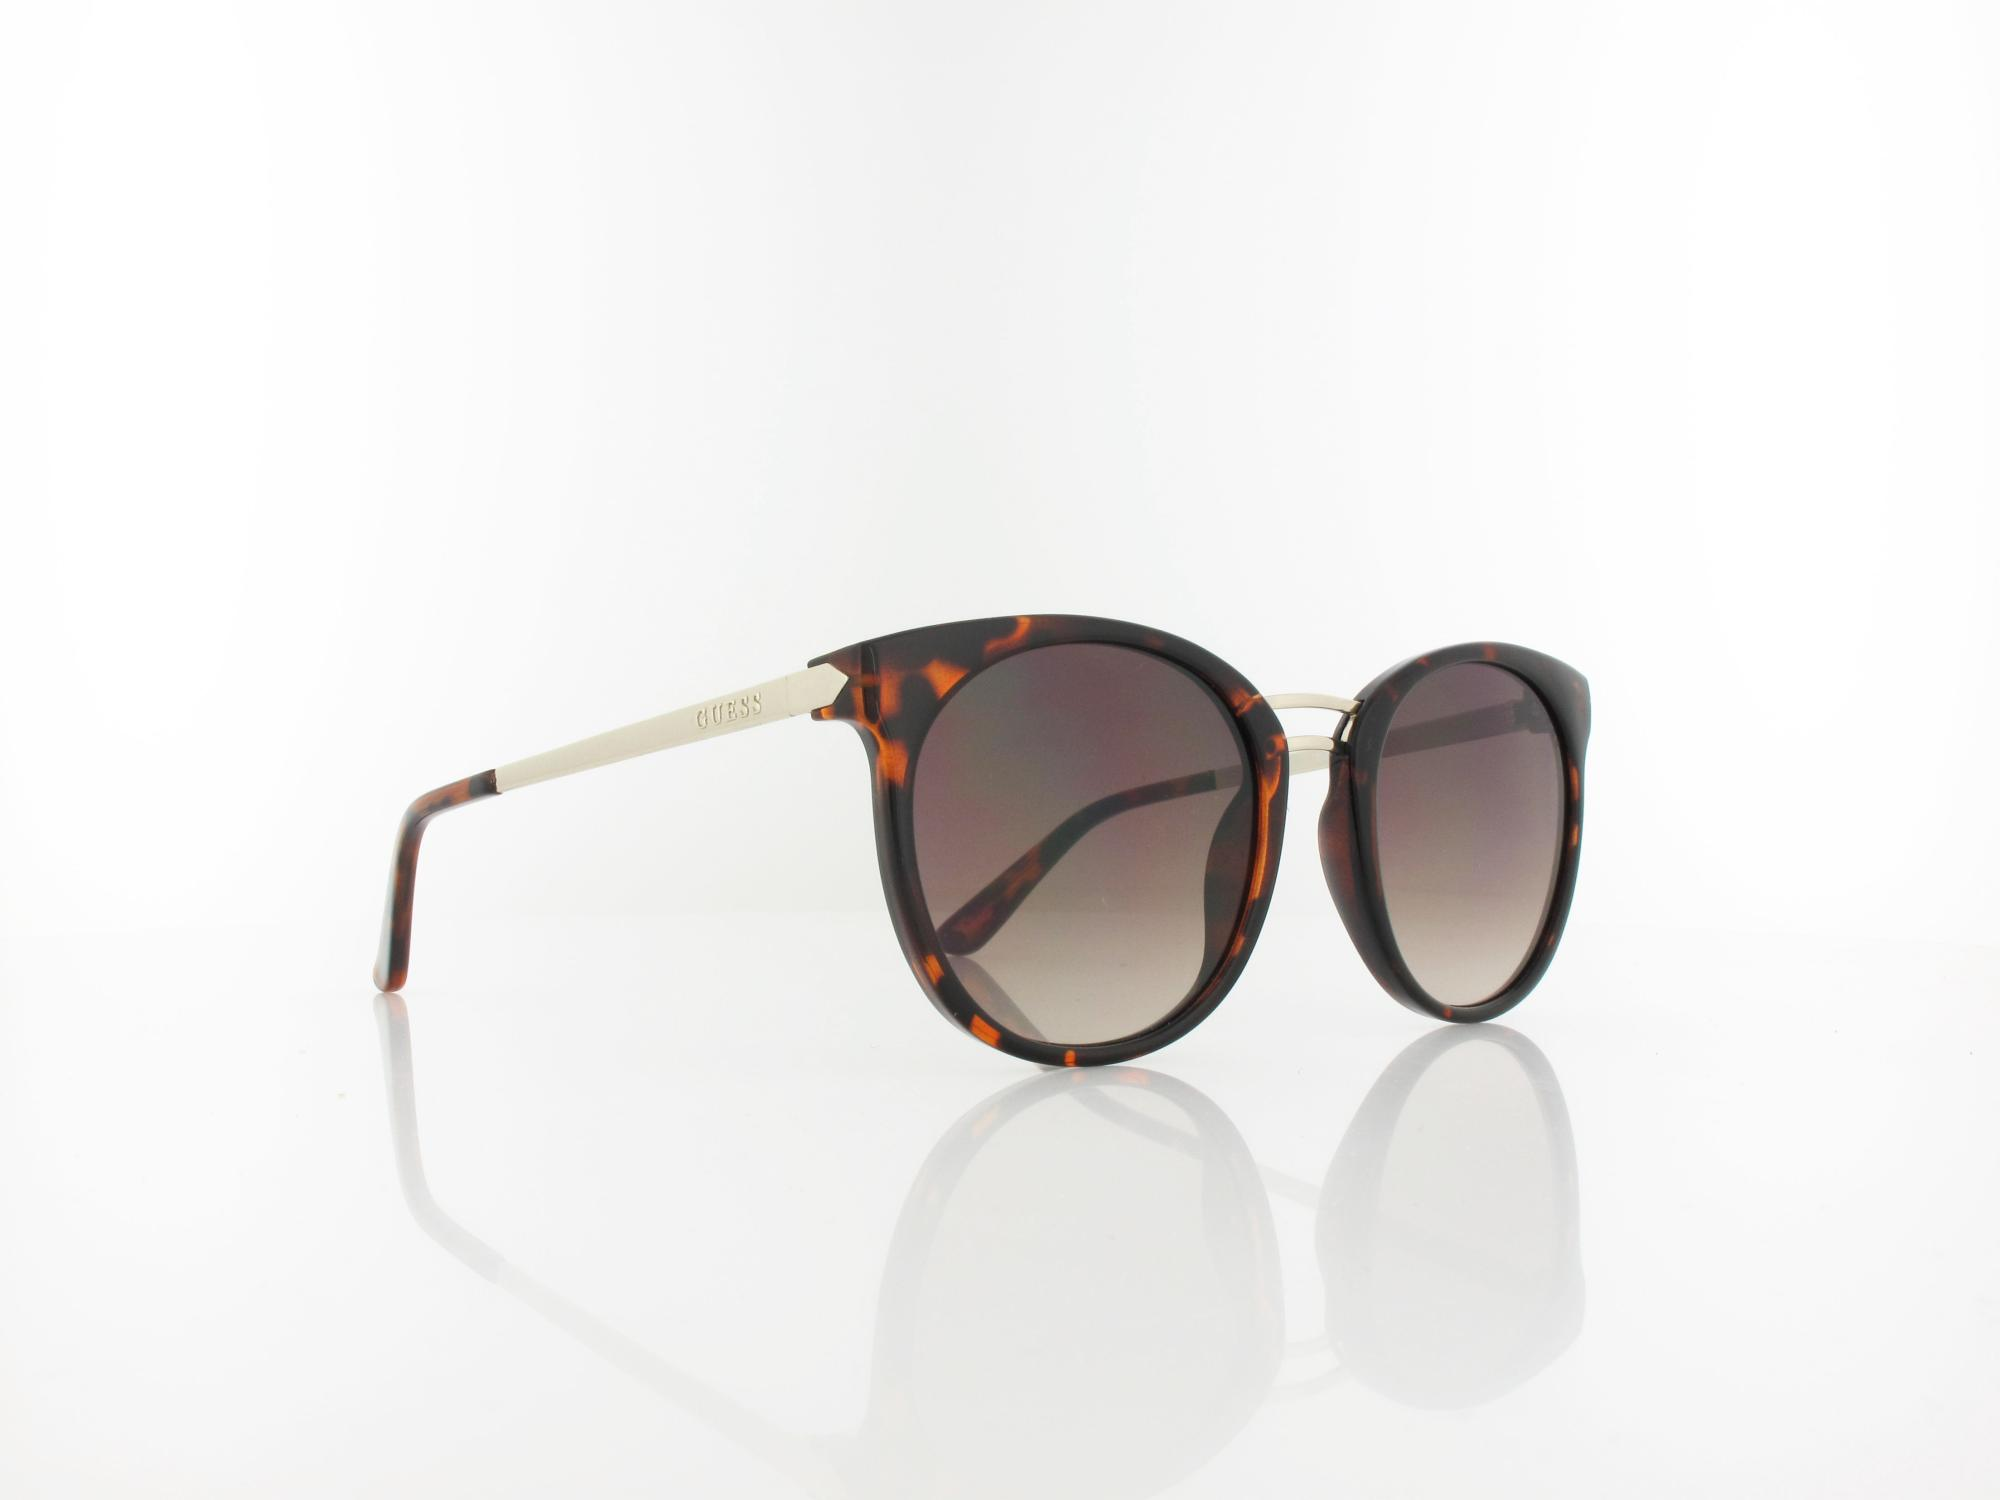 Guess | GU7568/S 52F 52 | dark havana / brown gradient